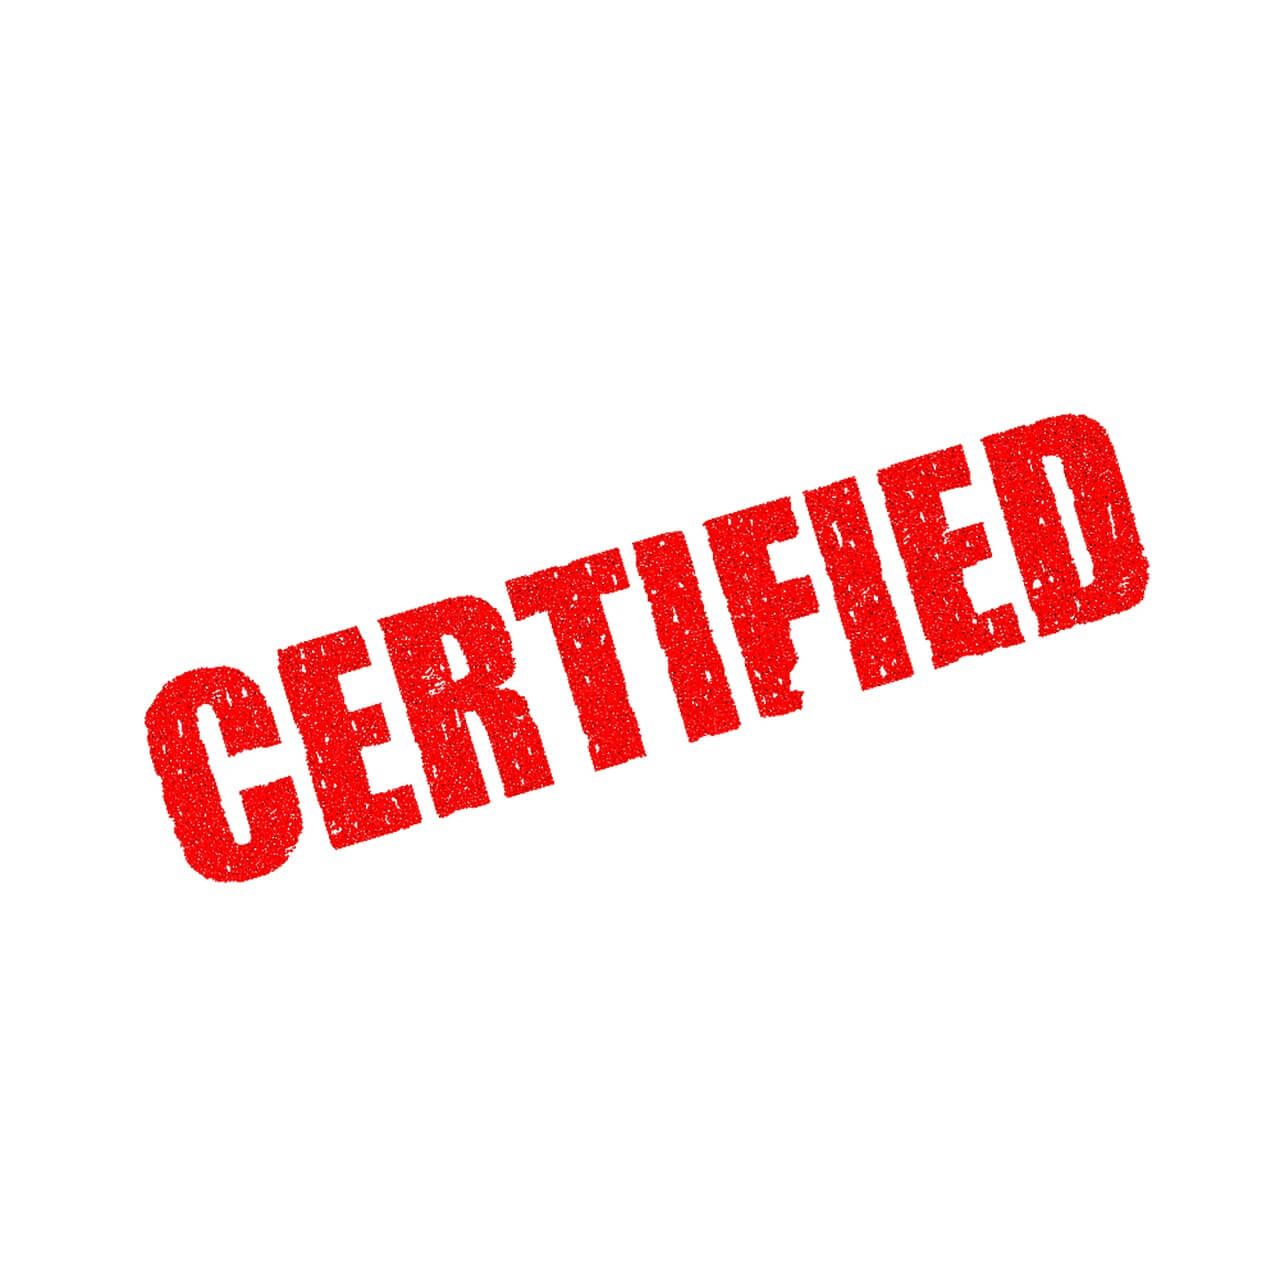 Entry Level IT certifications